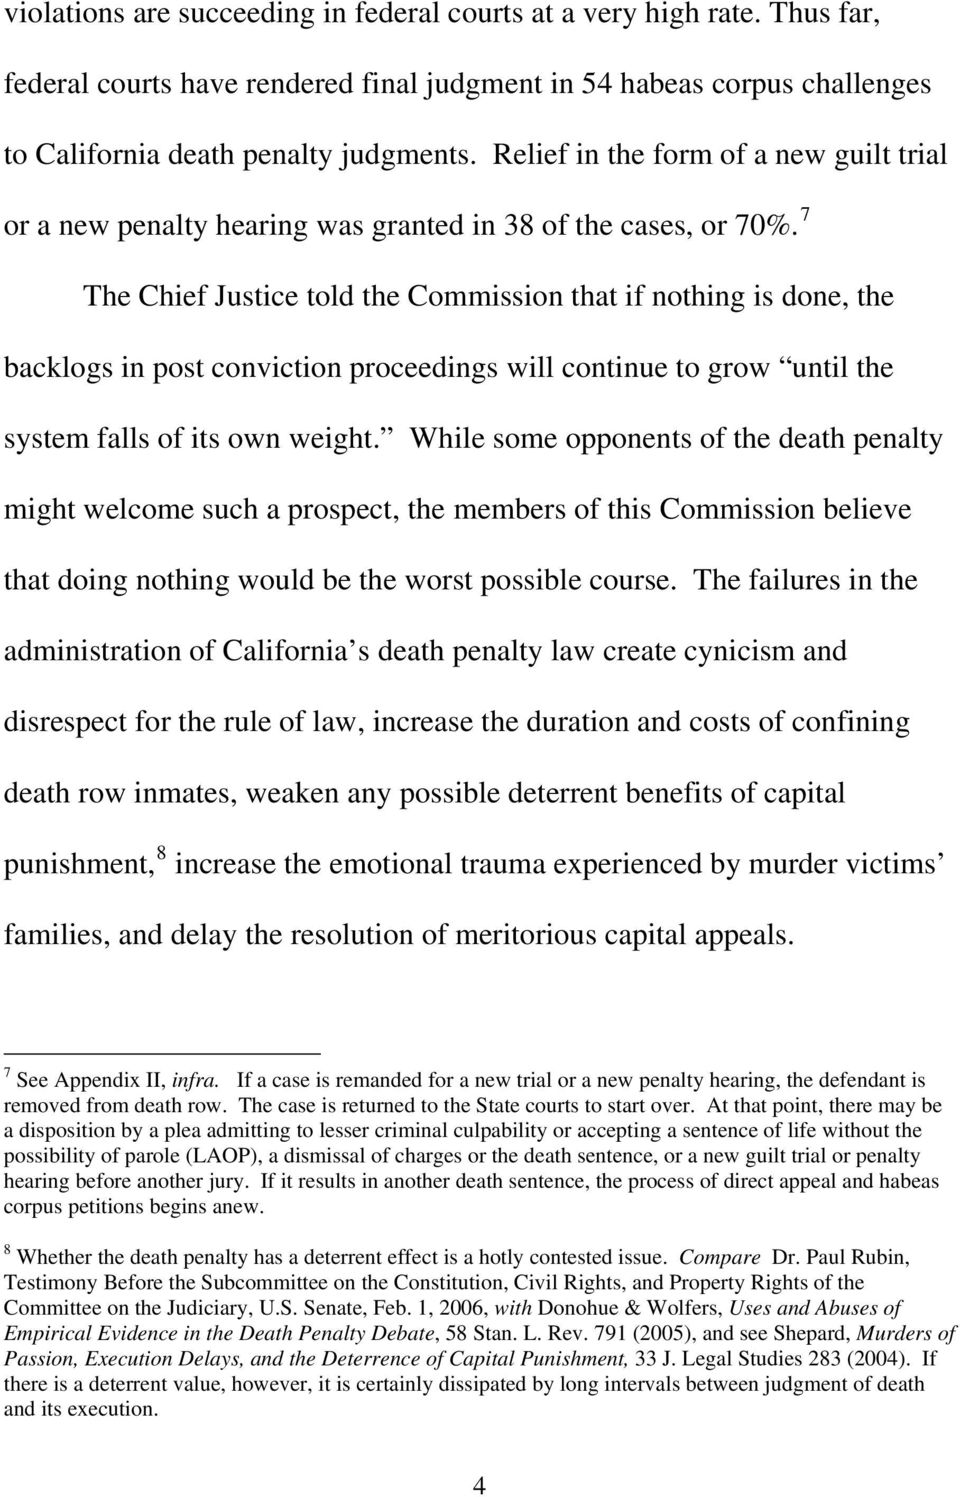 7 The Chief Justice told the Commission that if nothing is done, the backlogs in post conviction proceedings will continue to grow until the system falls of its own weight.